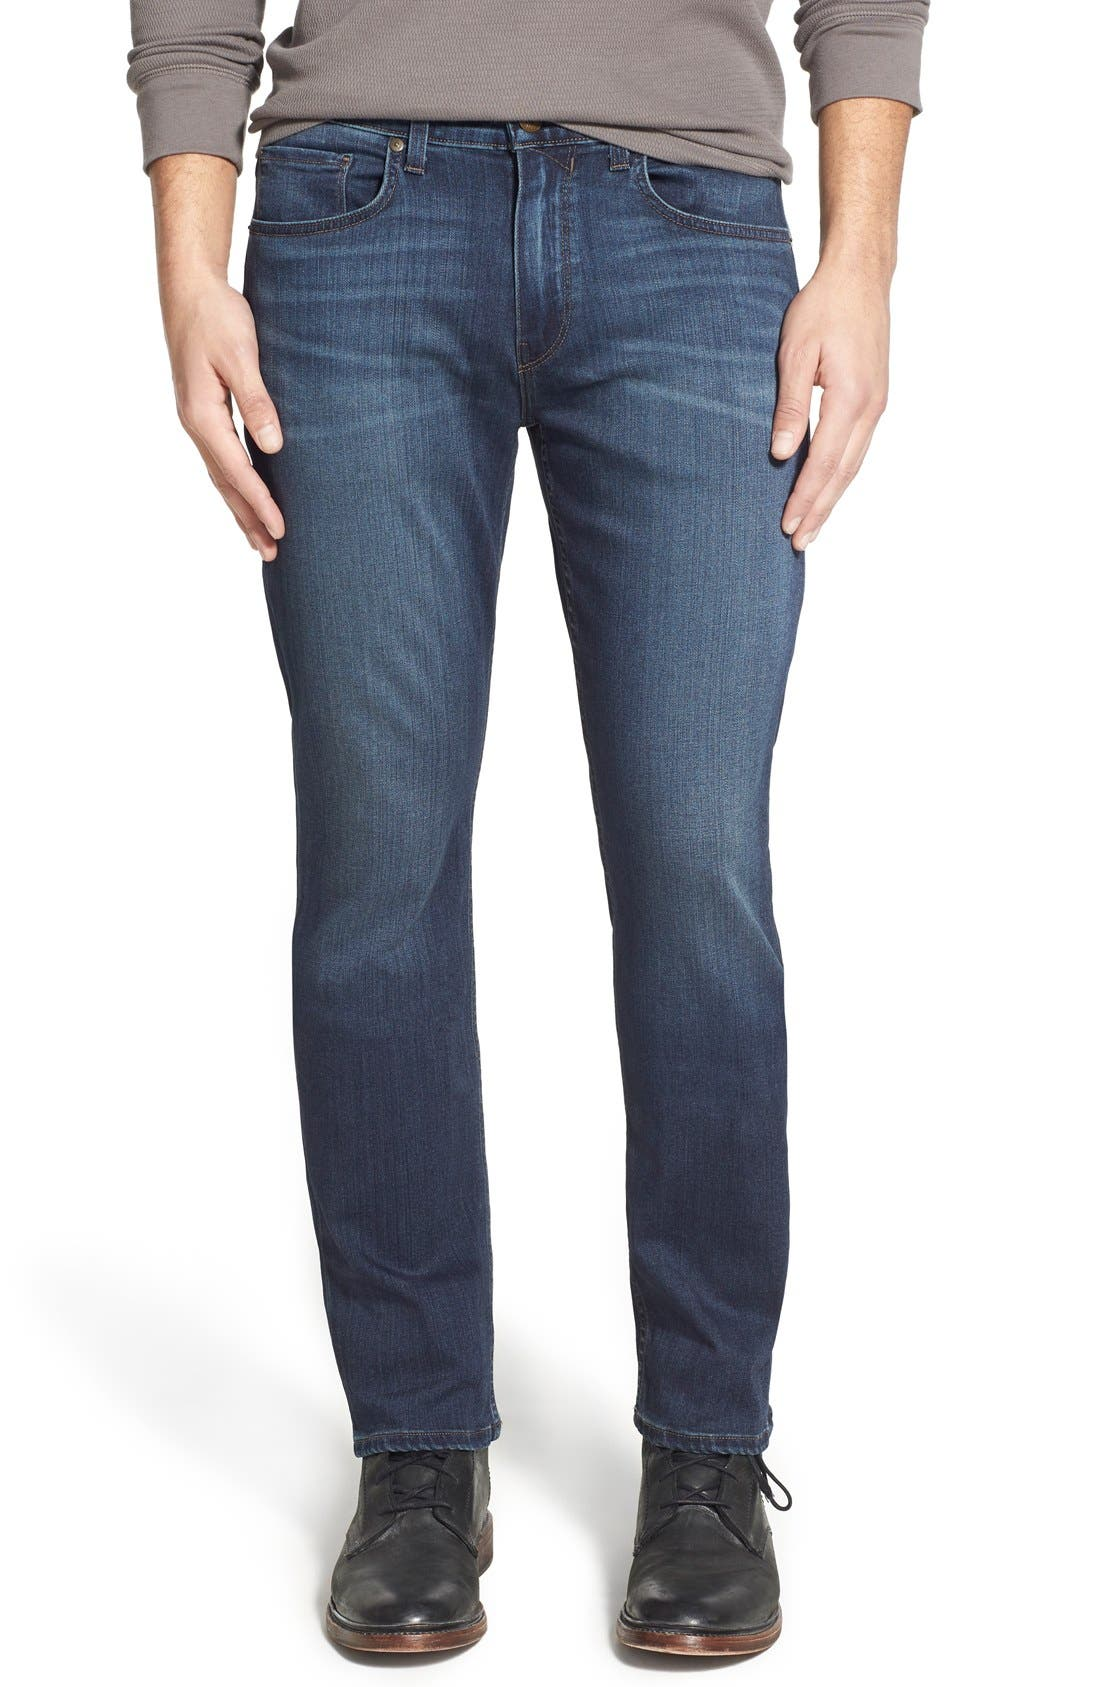 'Federal' Slim Straight Leg Jeans,                             Main thumbnail 1, color,                             BLAKELY